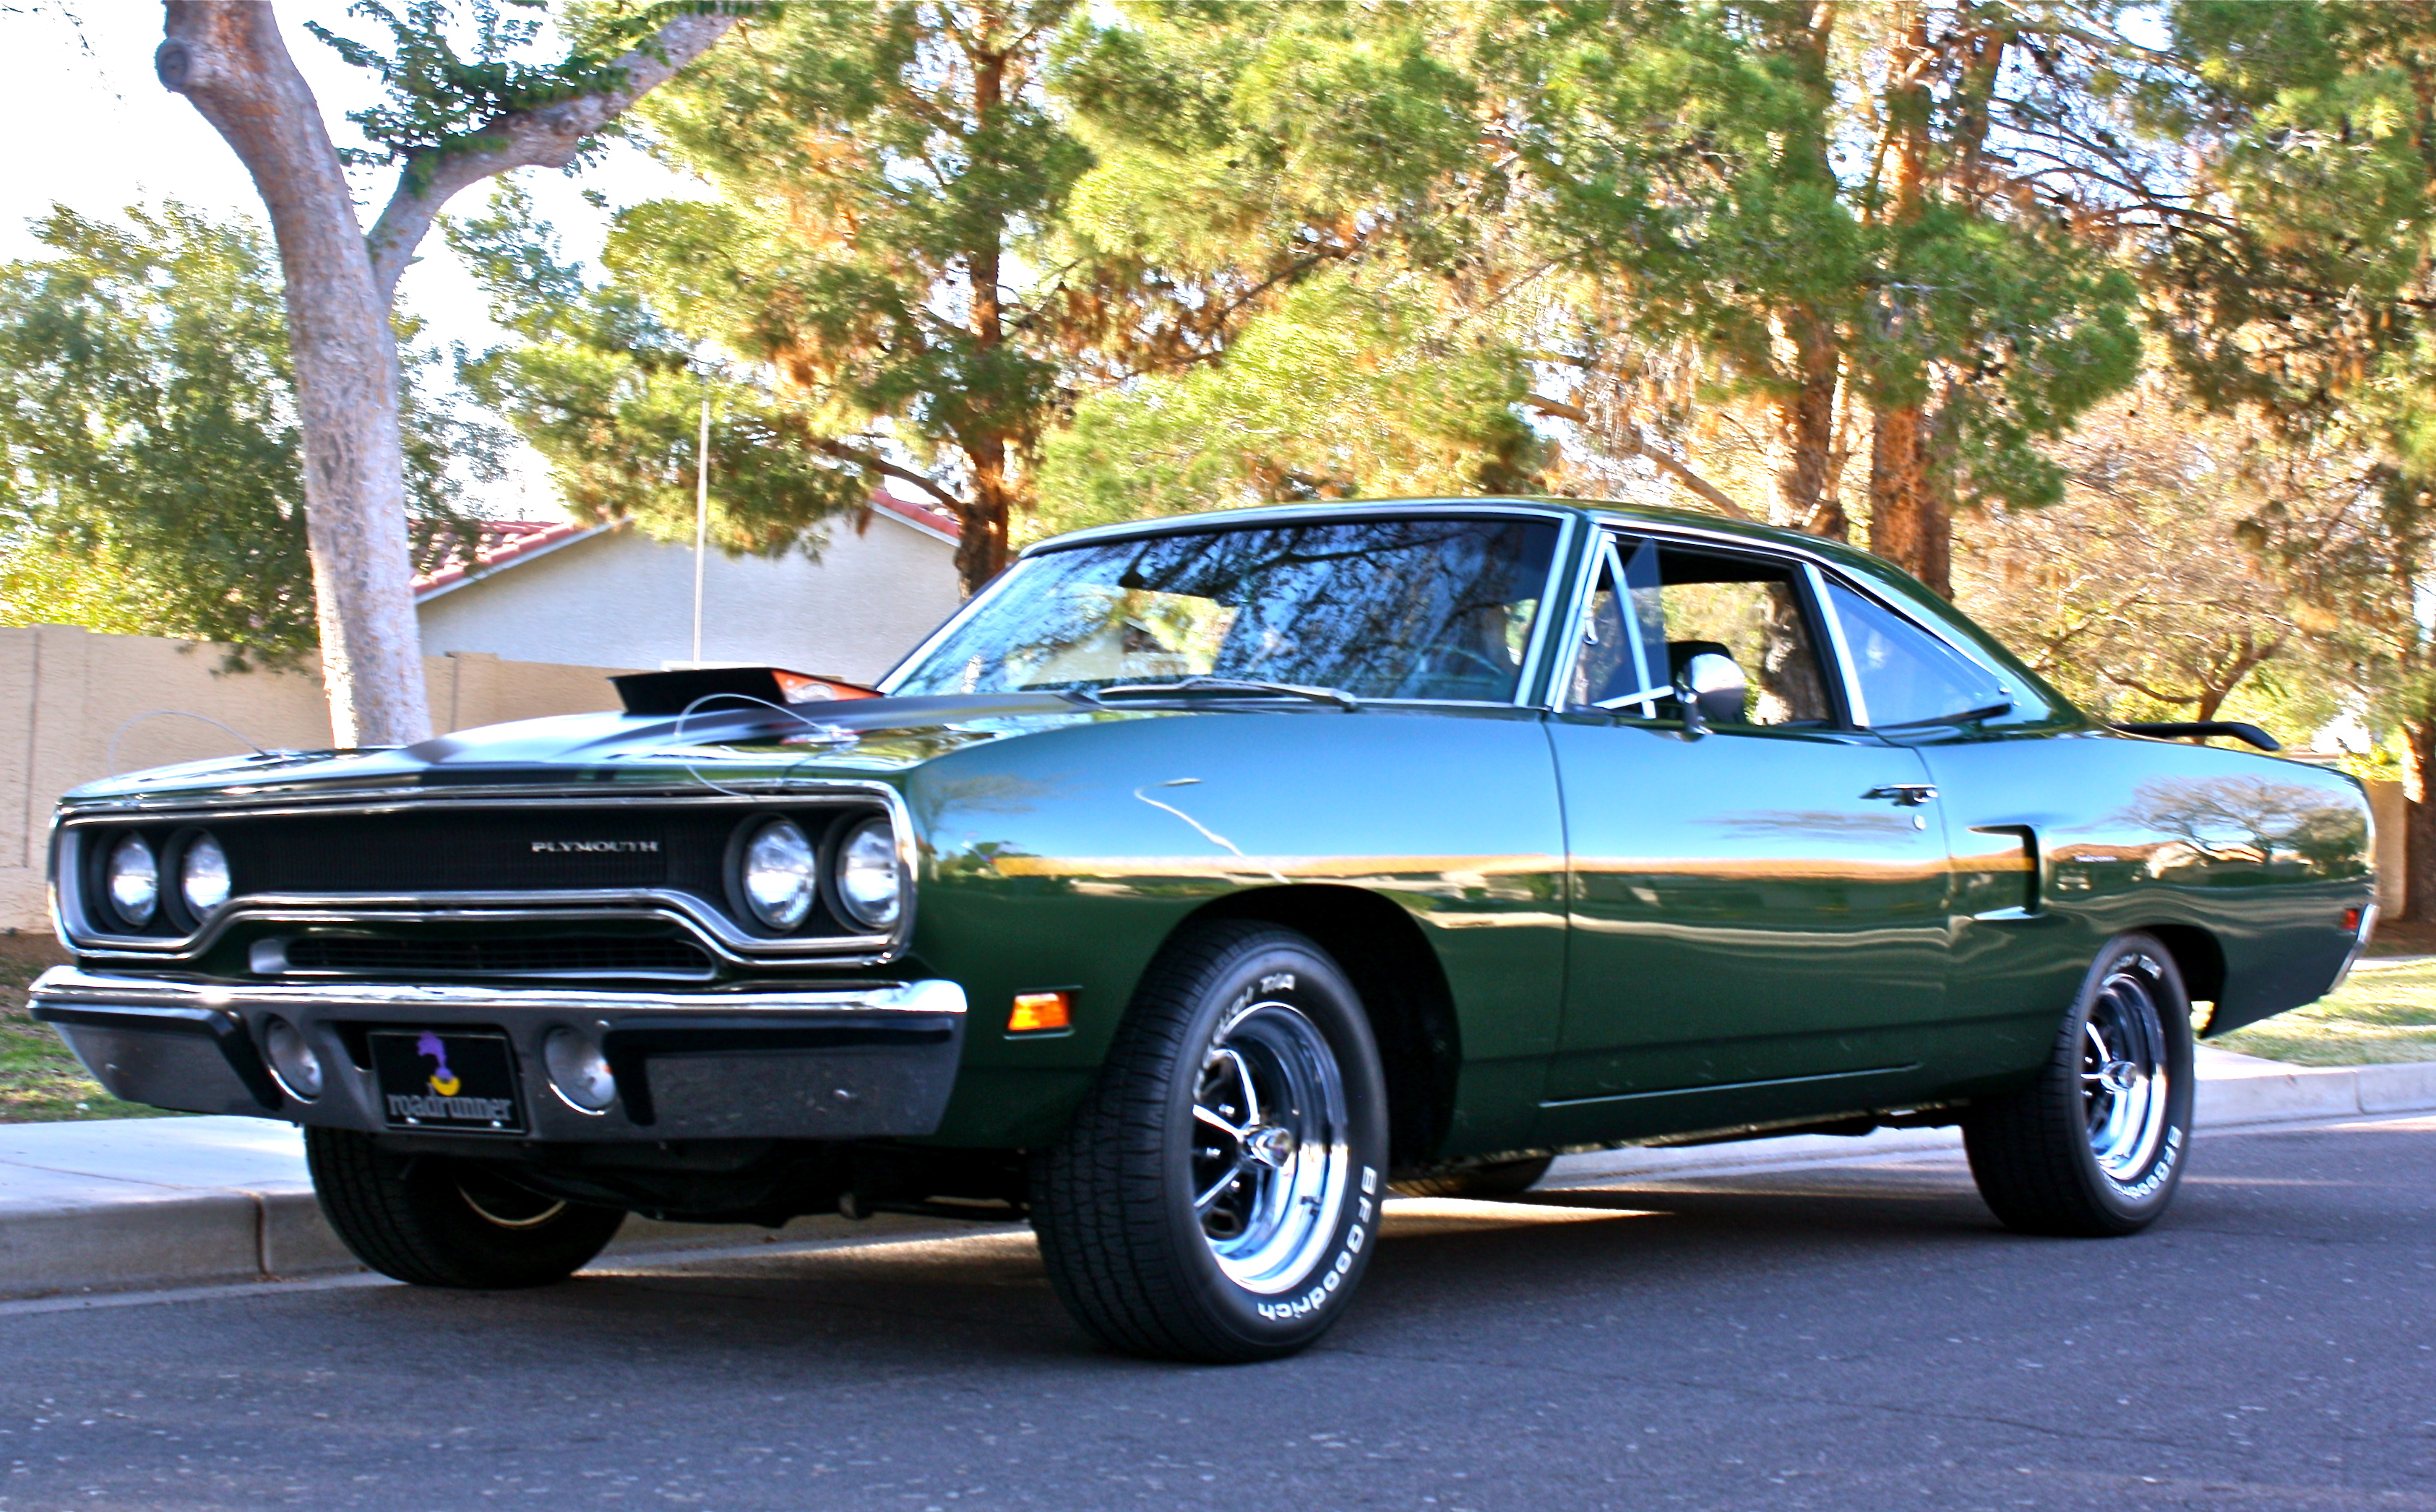 Stunning 1970 Green Plymouth Roadrunner This Beauty Is